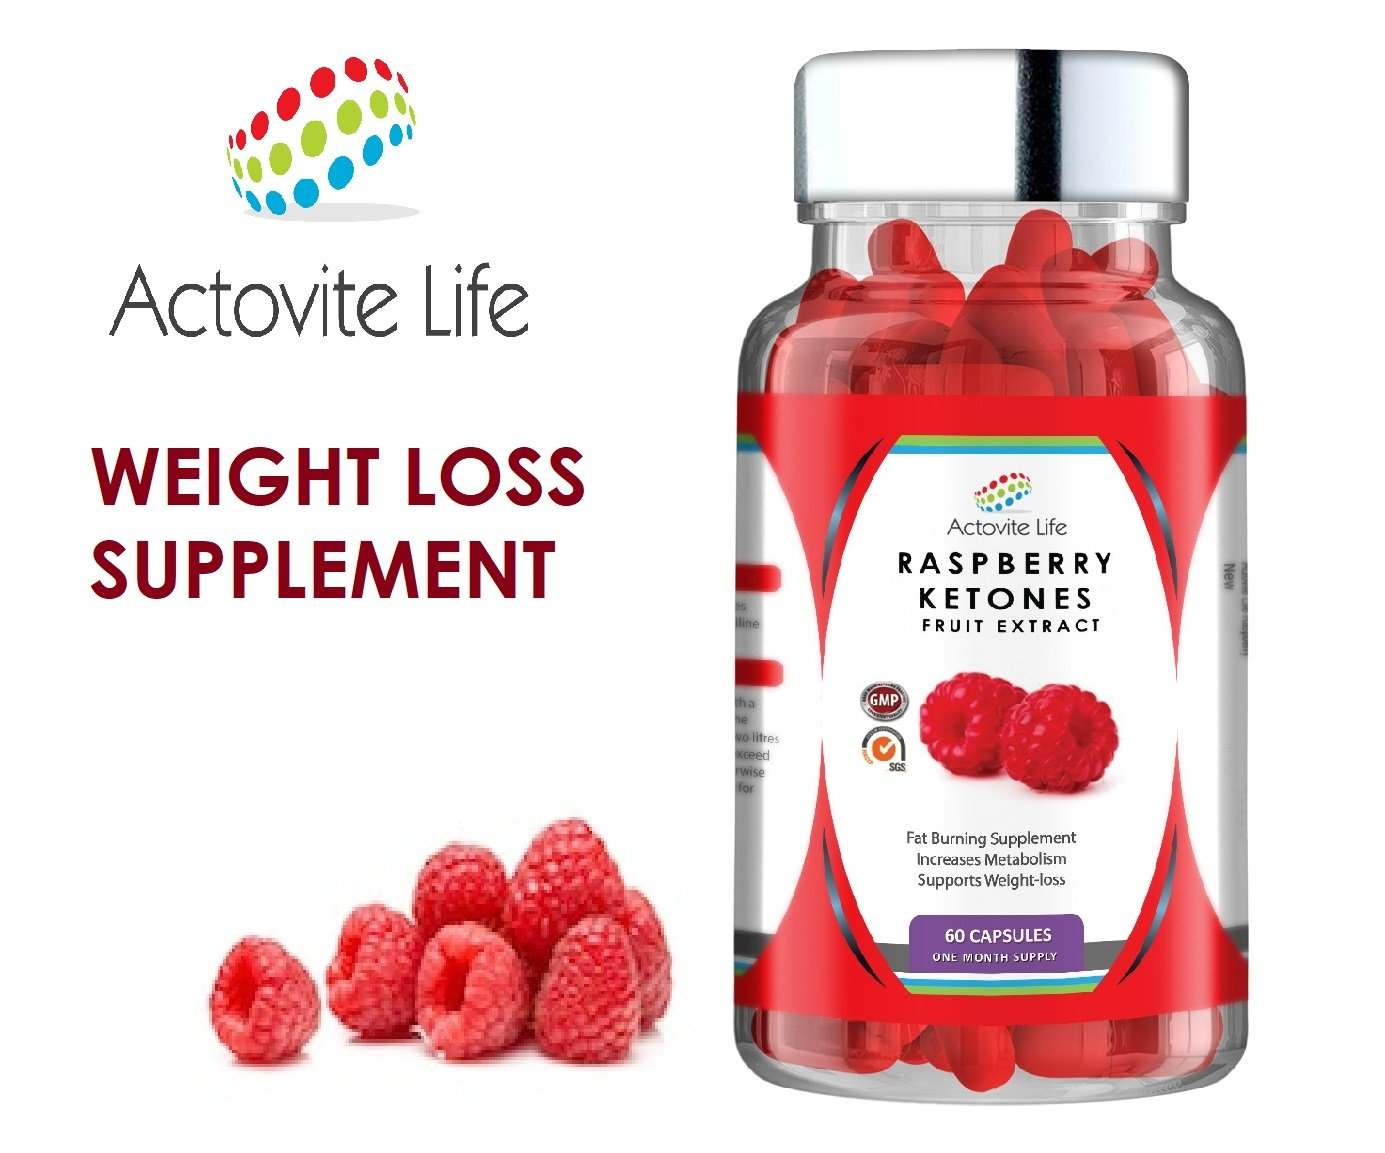 Raspberry Ketones 2000mg Daily Max Strength Weight Loss Slimming Diet Pills Pure Natural Fat Burners 10 1 Fruit Extract Plus Suitable For Men And